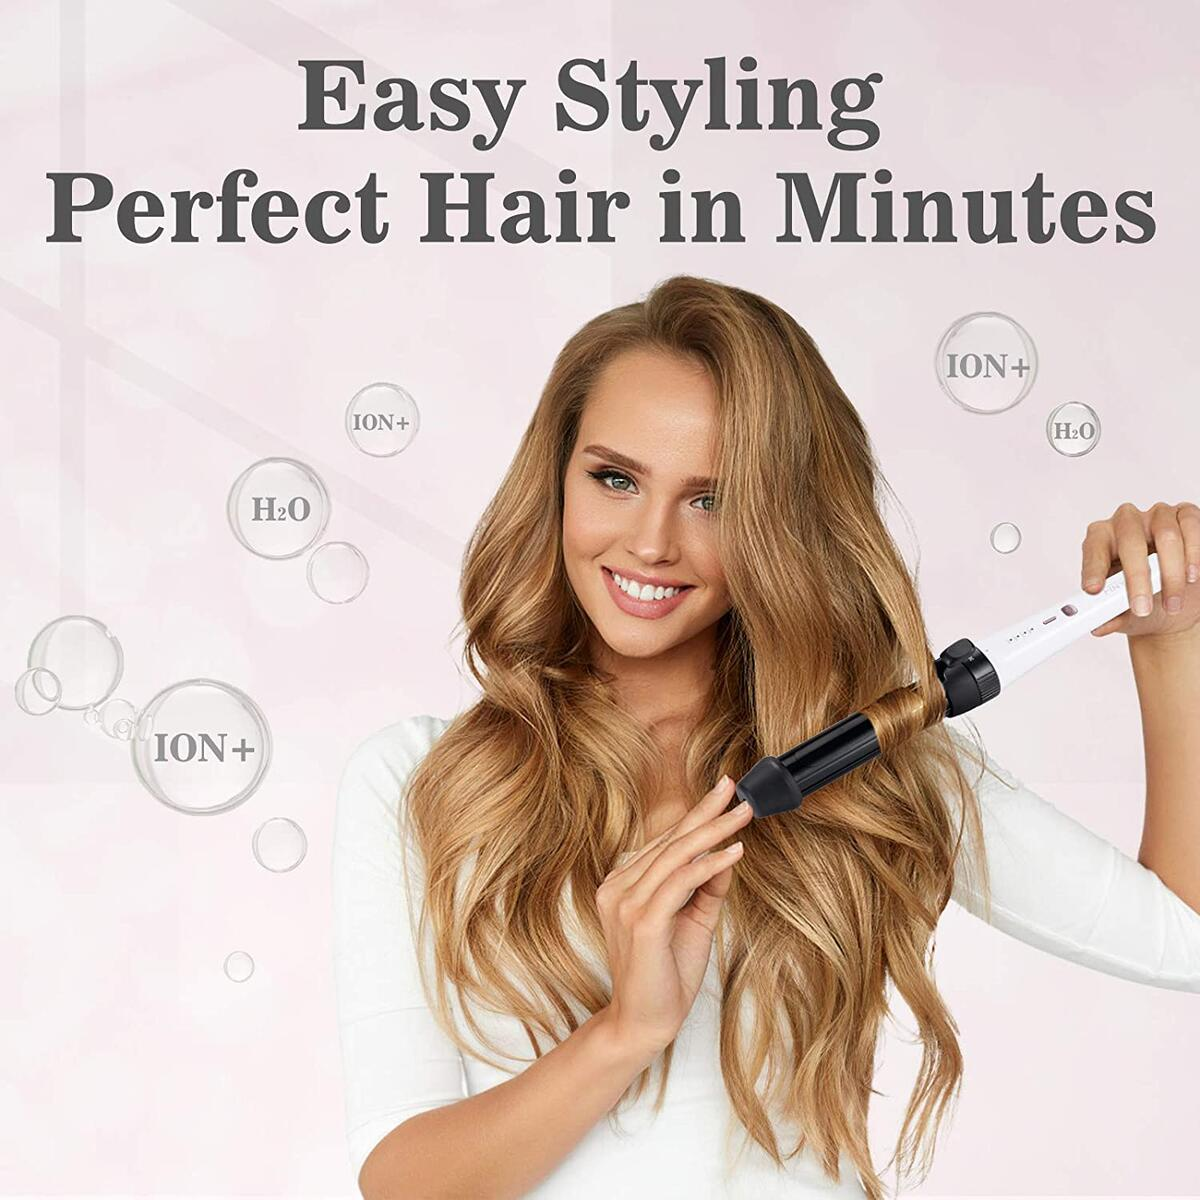 FINYOU 3 in 1 Curling Wand, Ceramic Tourmaline Hair Curling Iron, Heat Up Quickly Adjustable Temperature Crimper Hair Iron, Professional Hair Waver Hair Curler for All Hairstyles(White & Black)